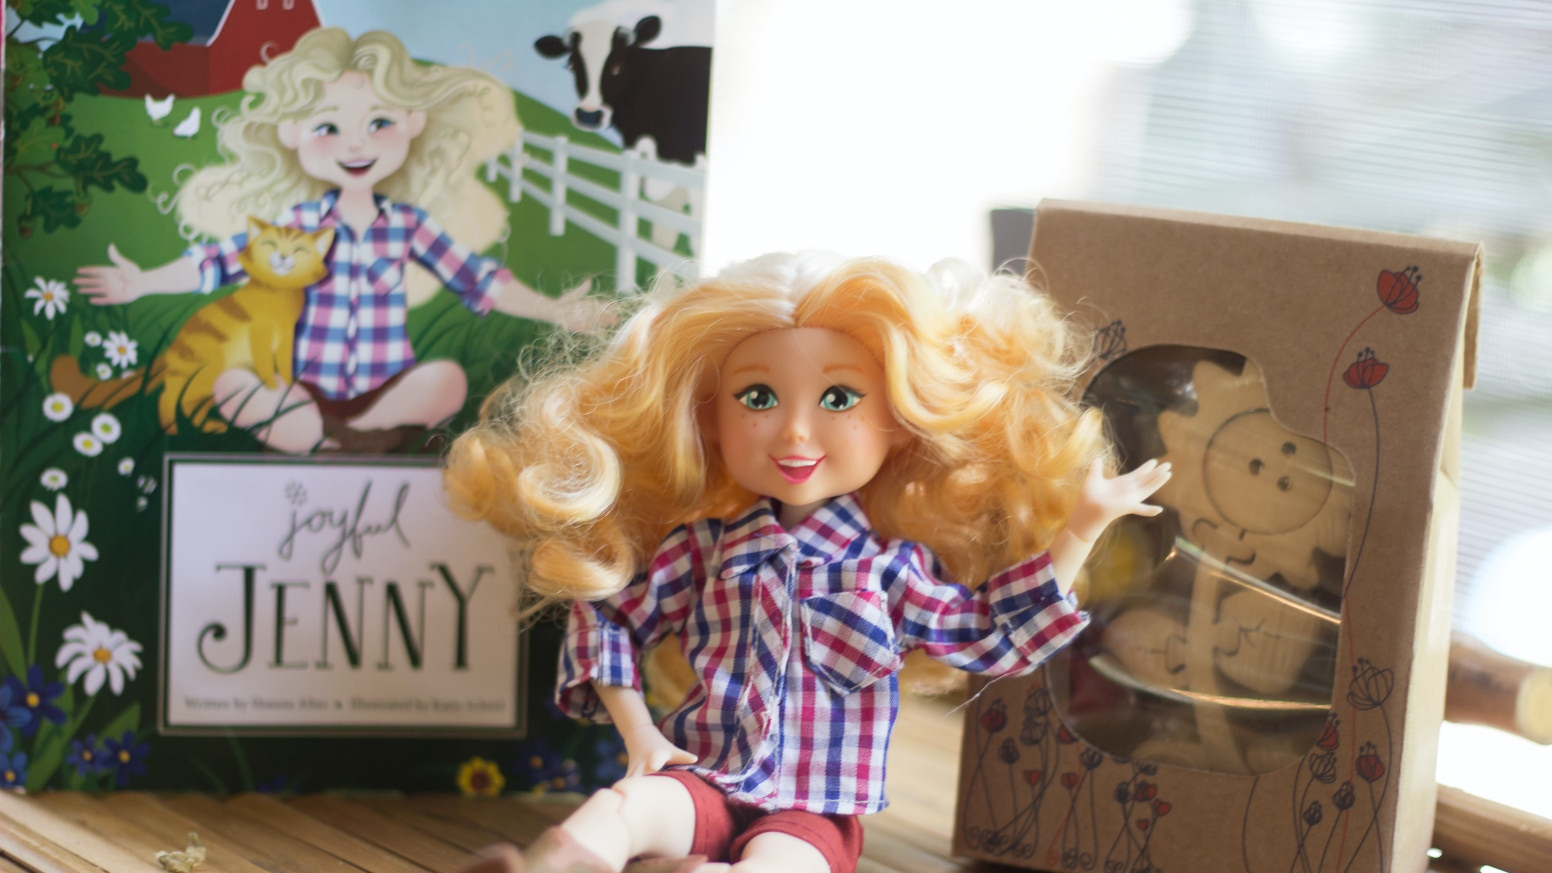 Discover the doll collection that teaches STEM skills, life values, and diversity through activities, recipes, stories and charms